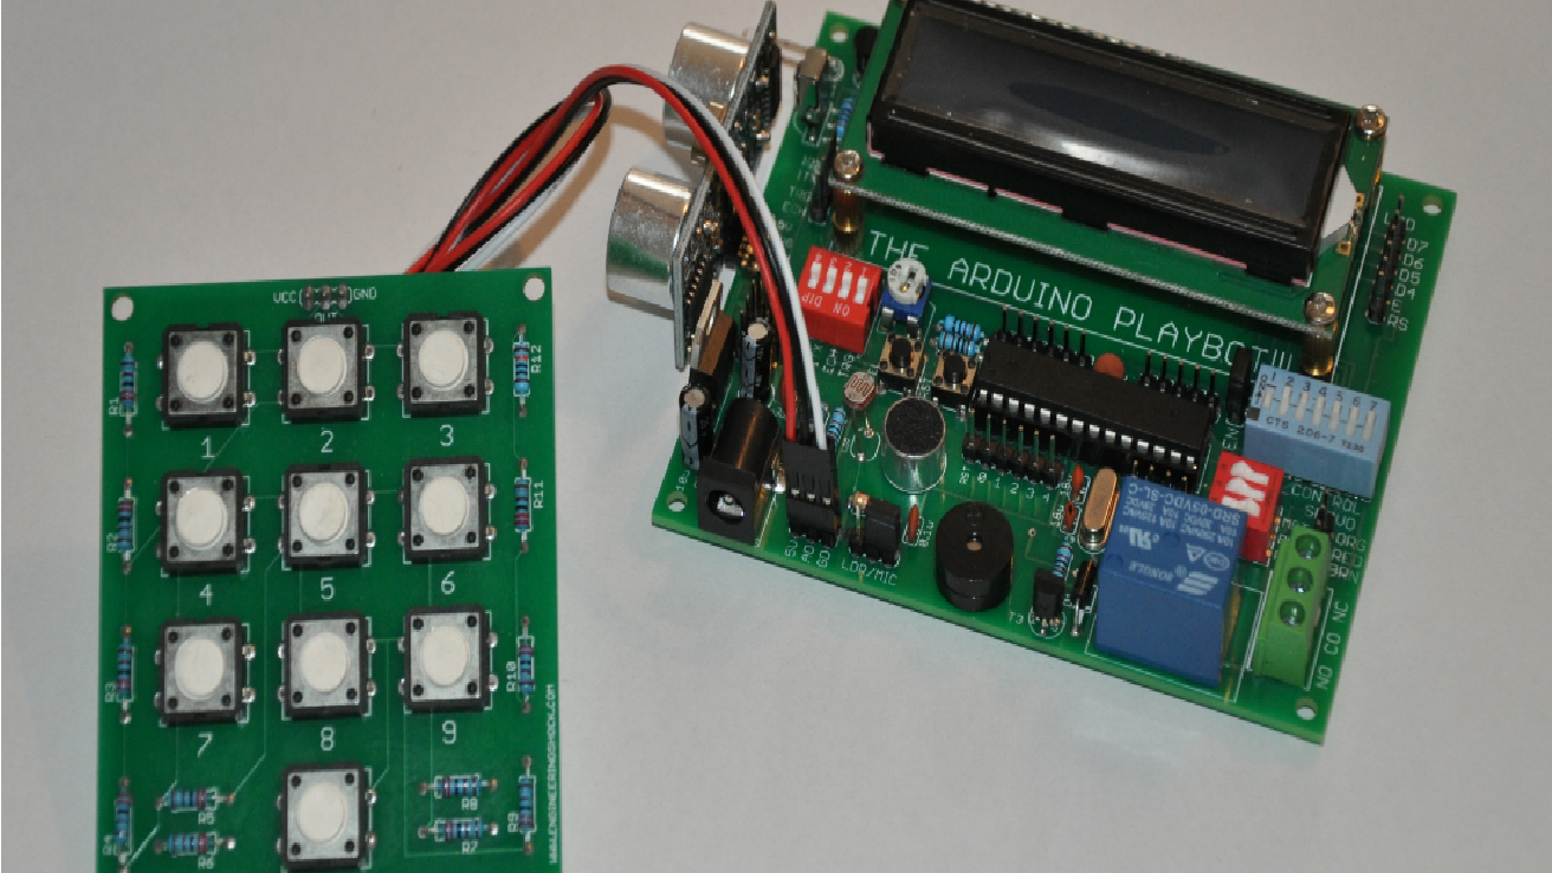 The Arduino Playbot An Educational All In One Project Set By Buzzergameshowcircuitpng